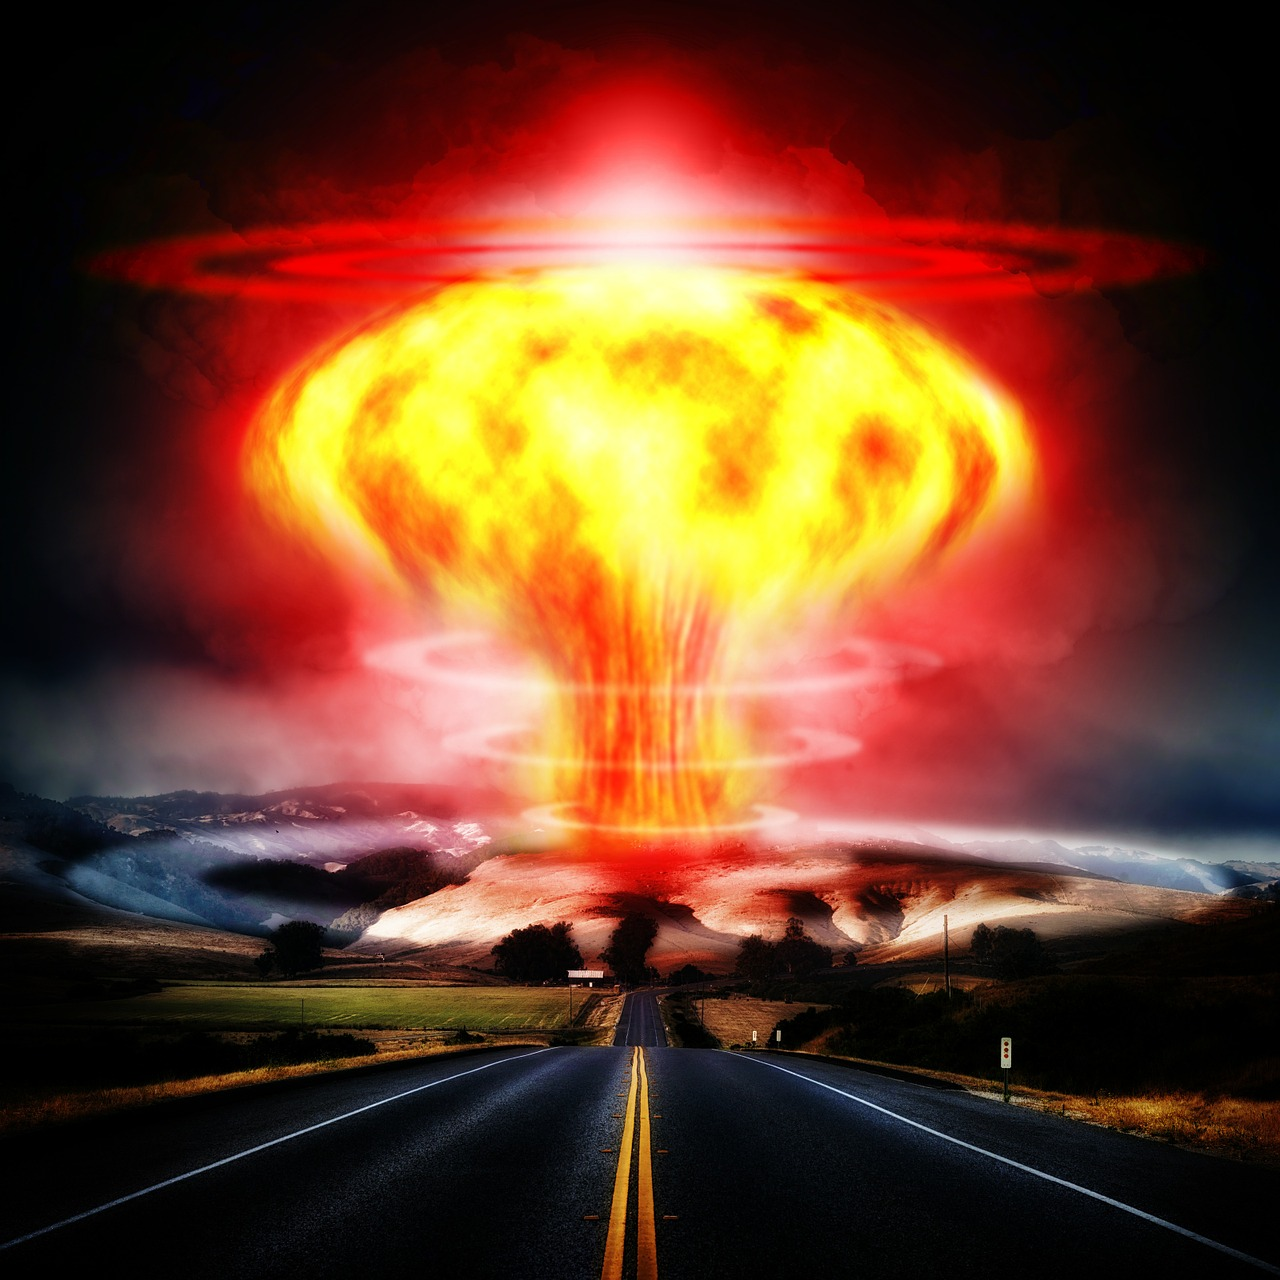 nuclear explosion mushroom cloud atomic bomb free photo